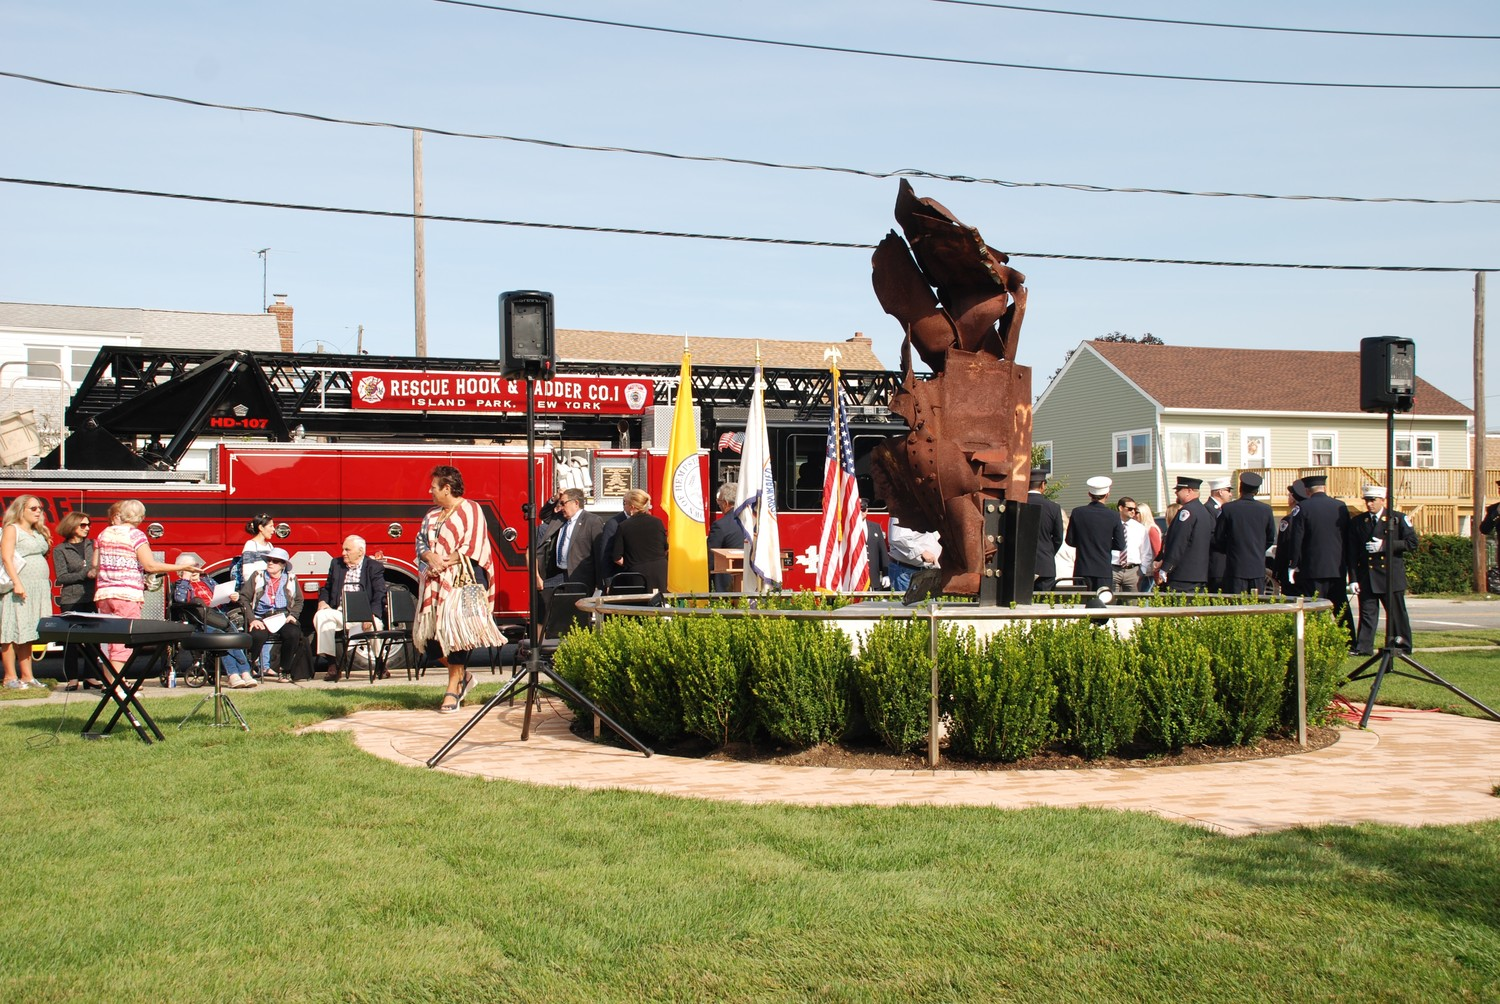 The Village of Island Park officially unveiled its memorial at the corner of Long Beach and Parma roads this Sept. 11.